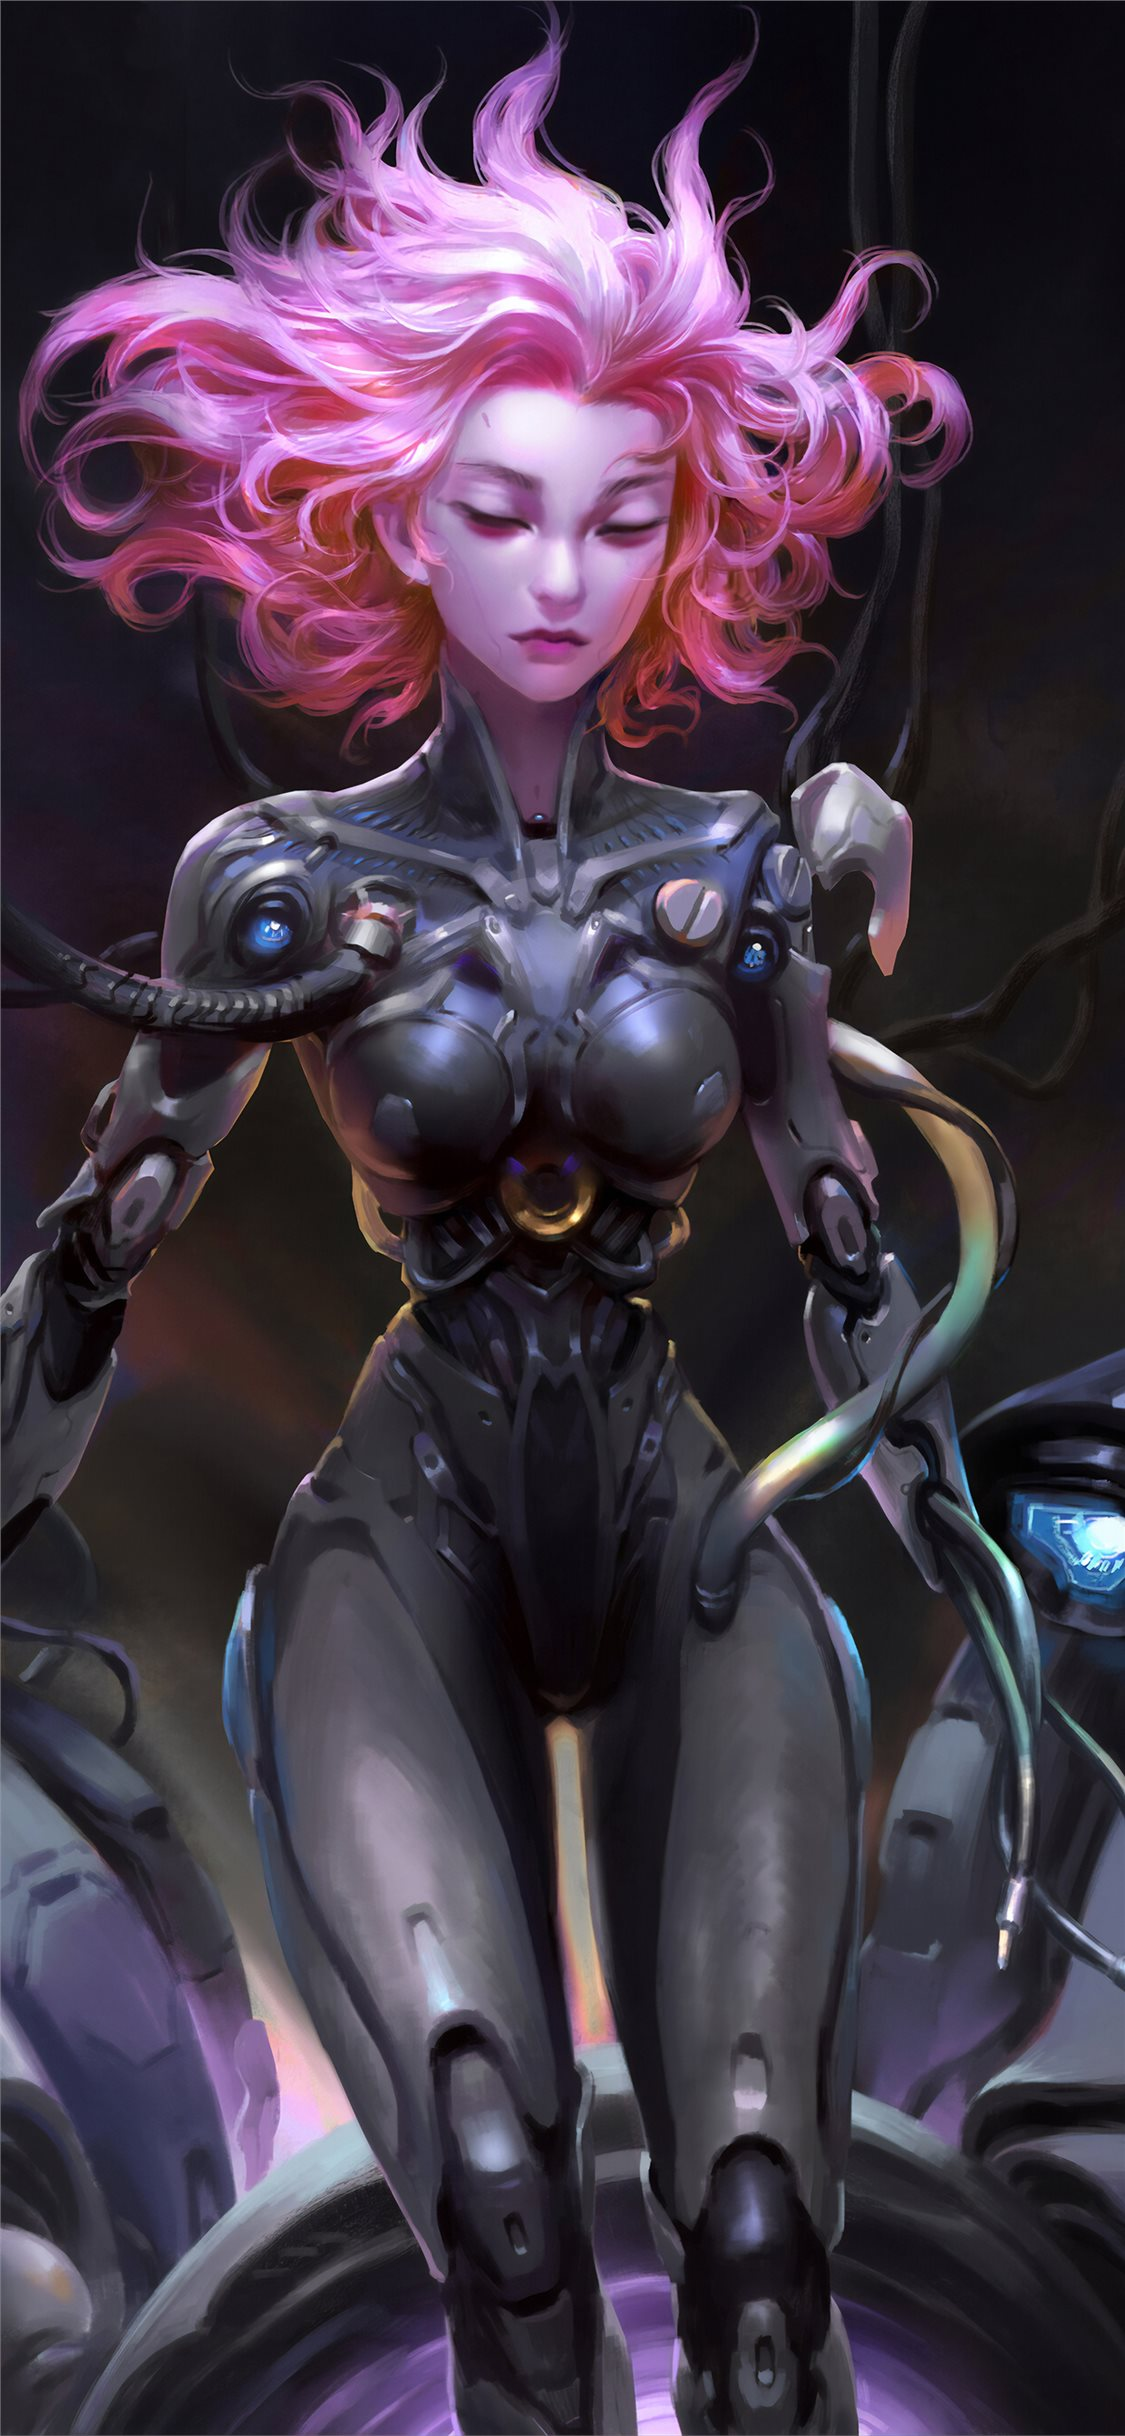 Dva Overwatch Cyborg Girl Iphone X Wallpapers Free Download